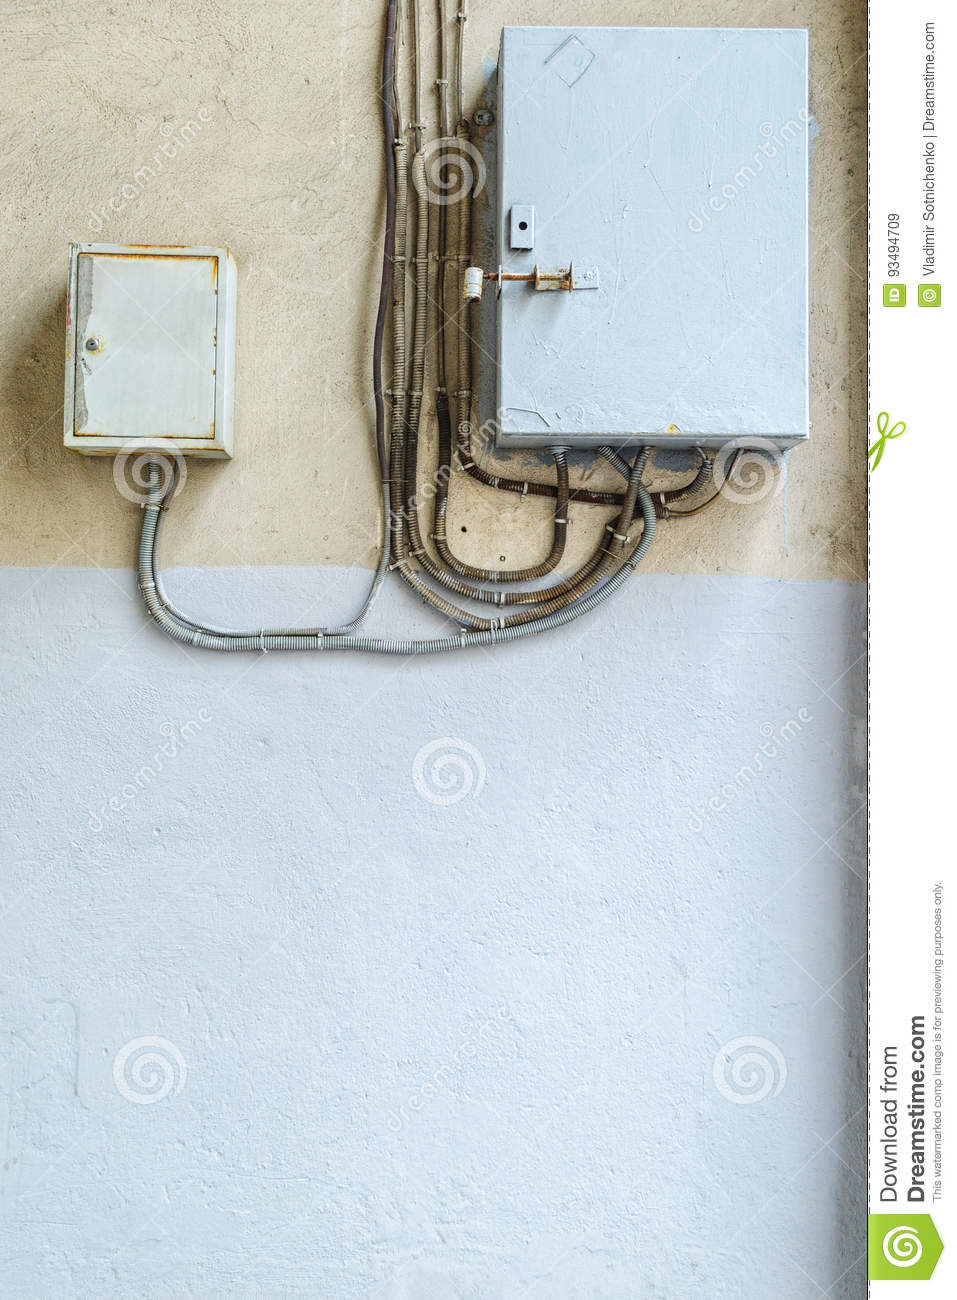 Electric Distribution Boxes On Wall Stock Image Of Home Wiring Box